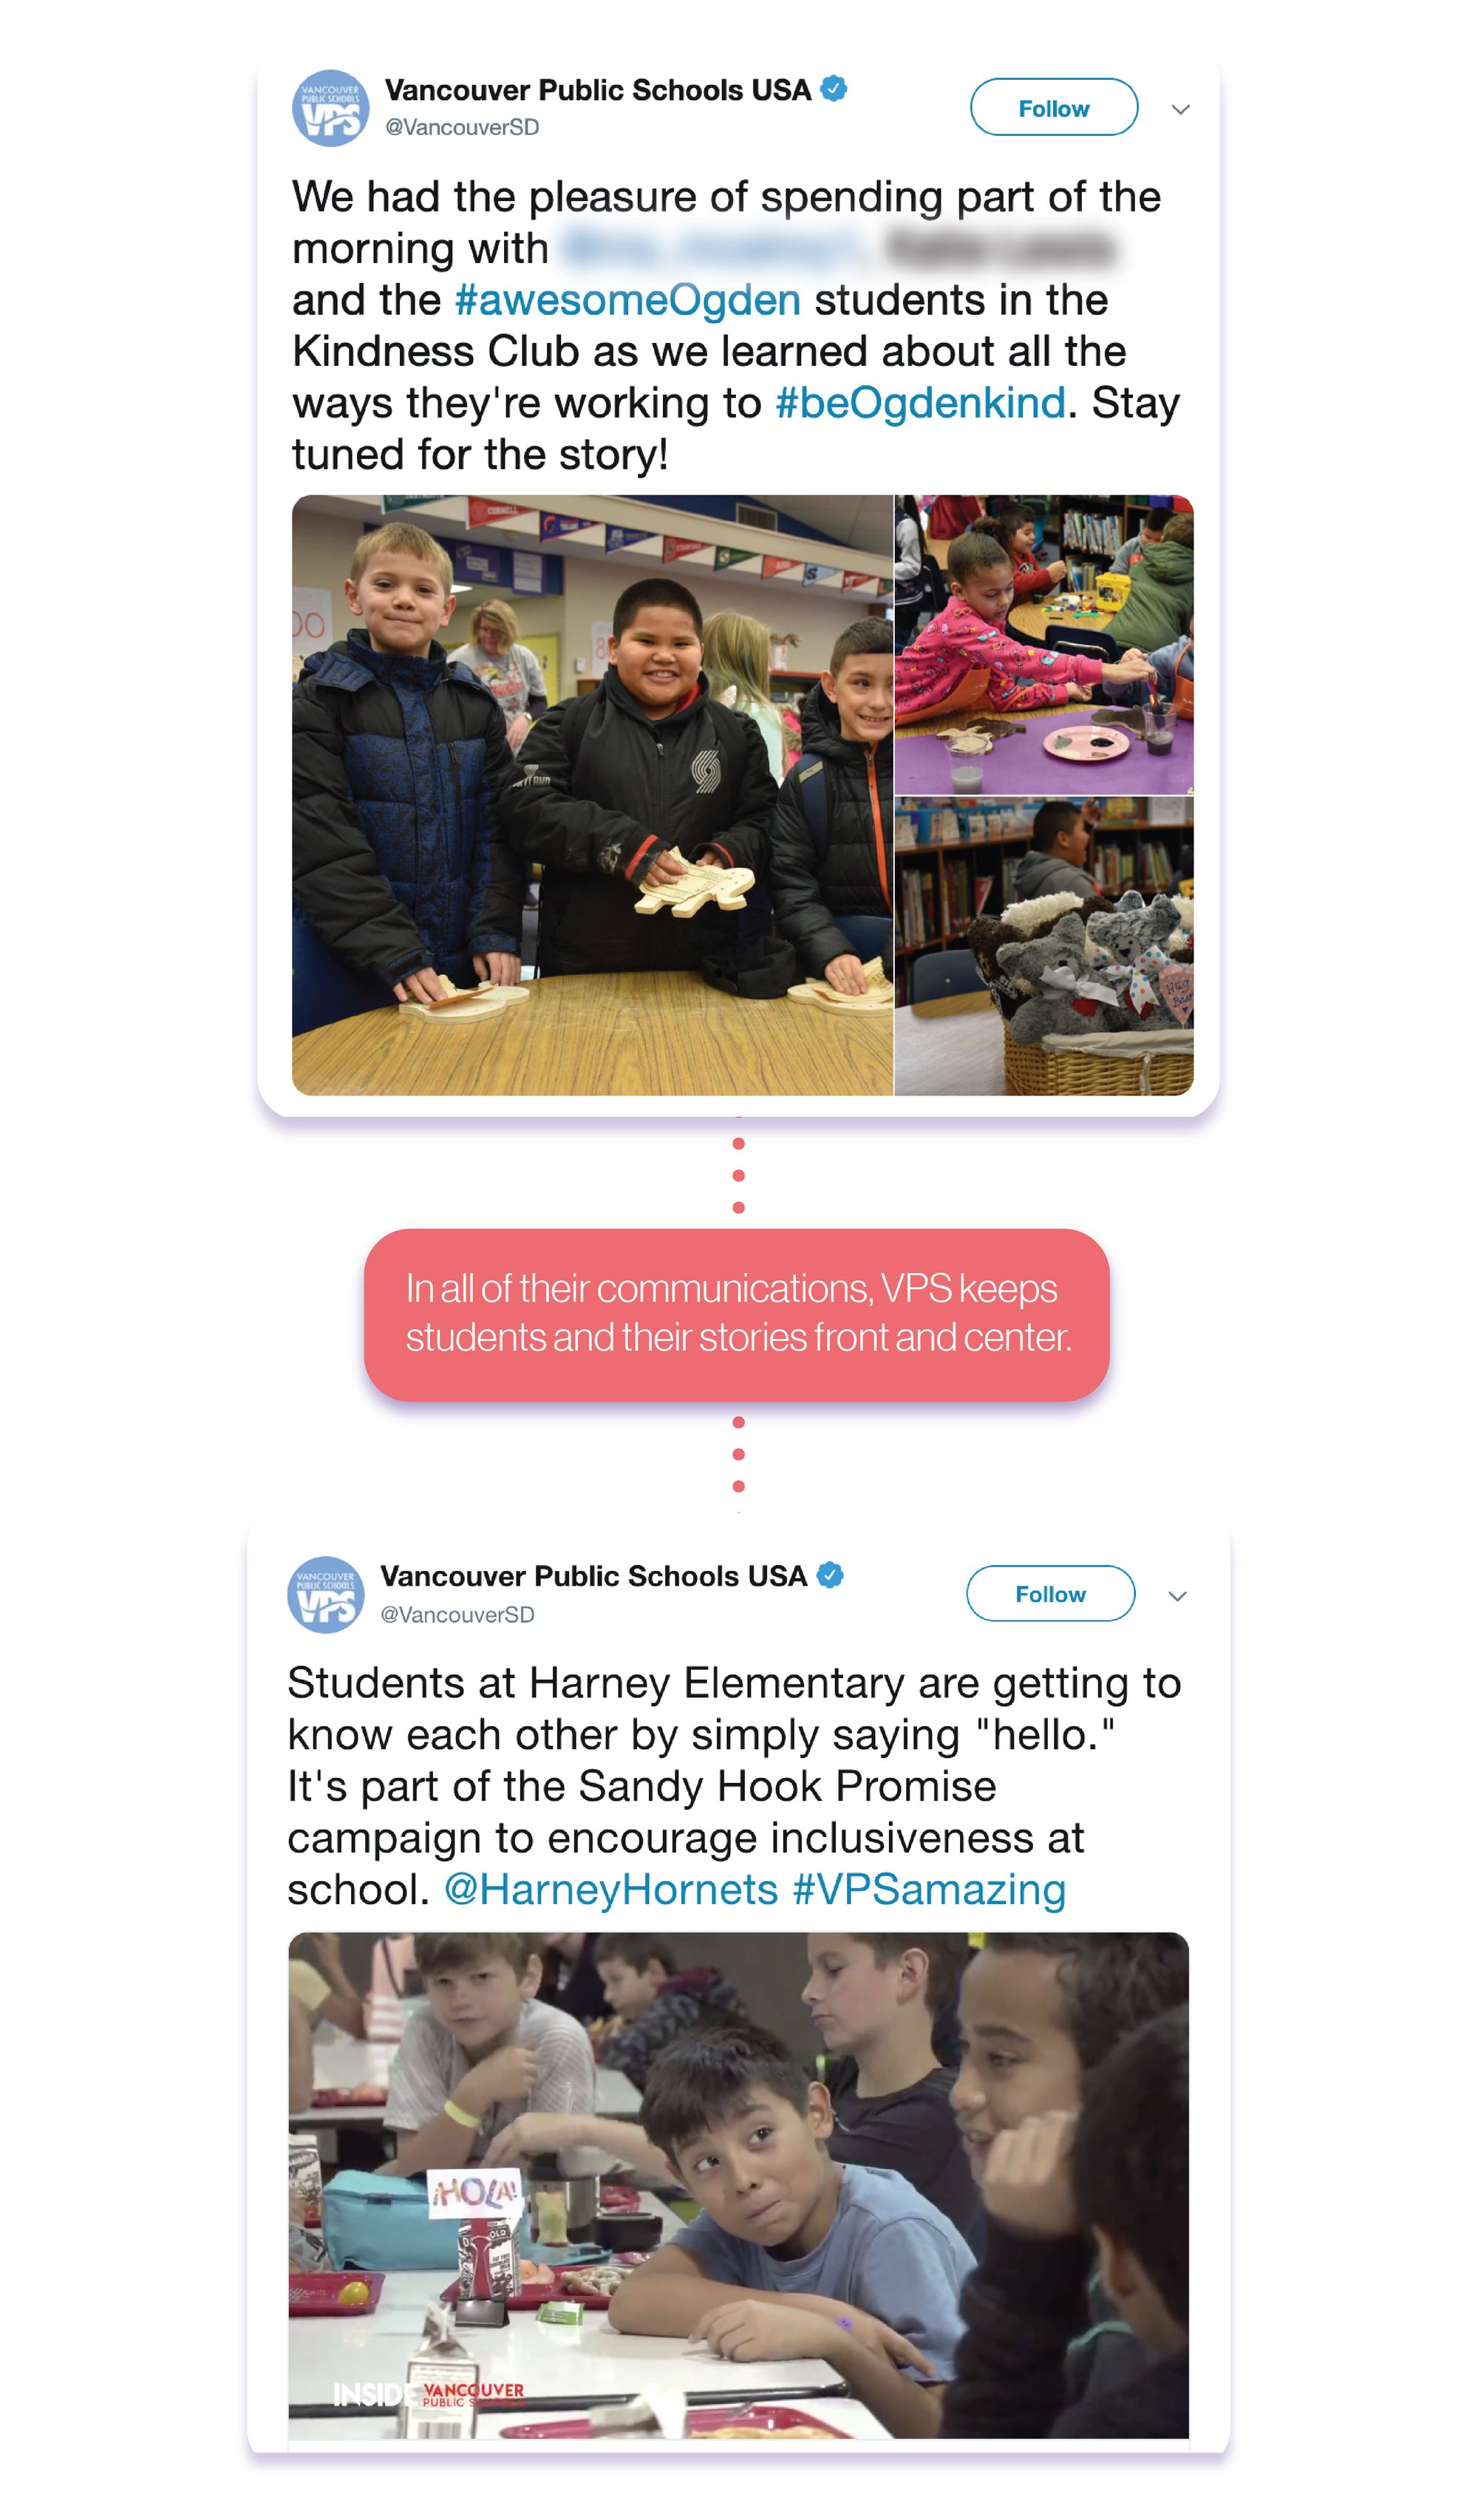 In all of their communications, VPS stays focused on students stories. In these posts, they show students practicing kindness and learning to make friends in the cafeteria.